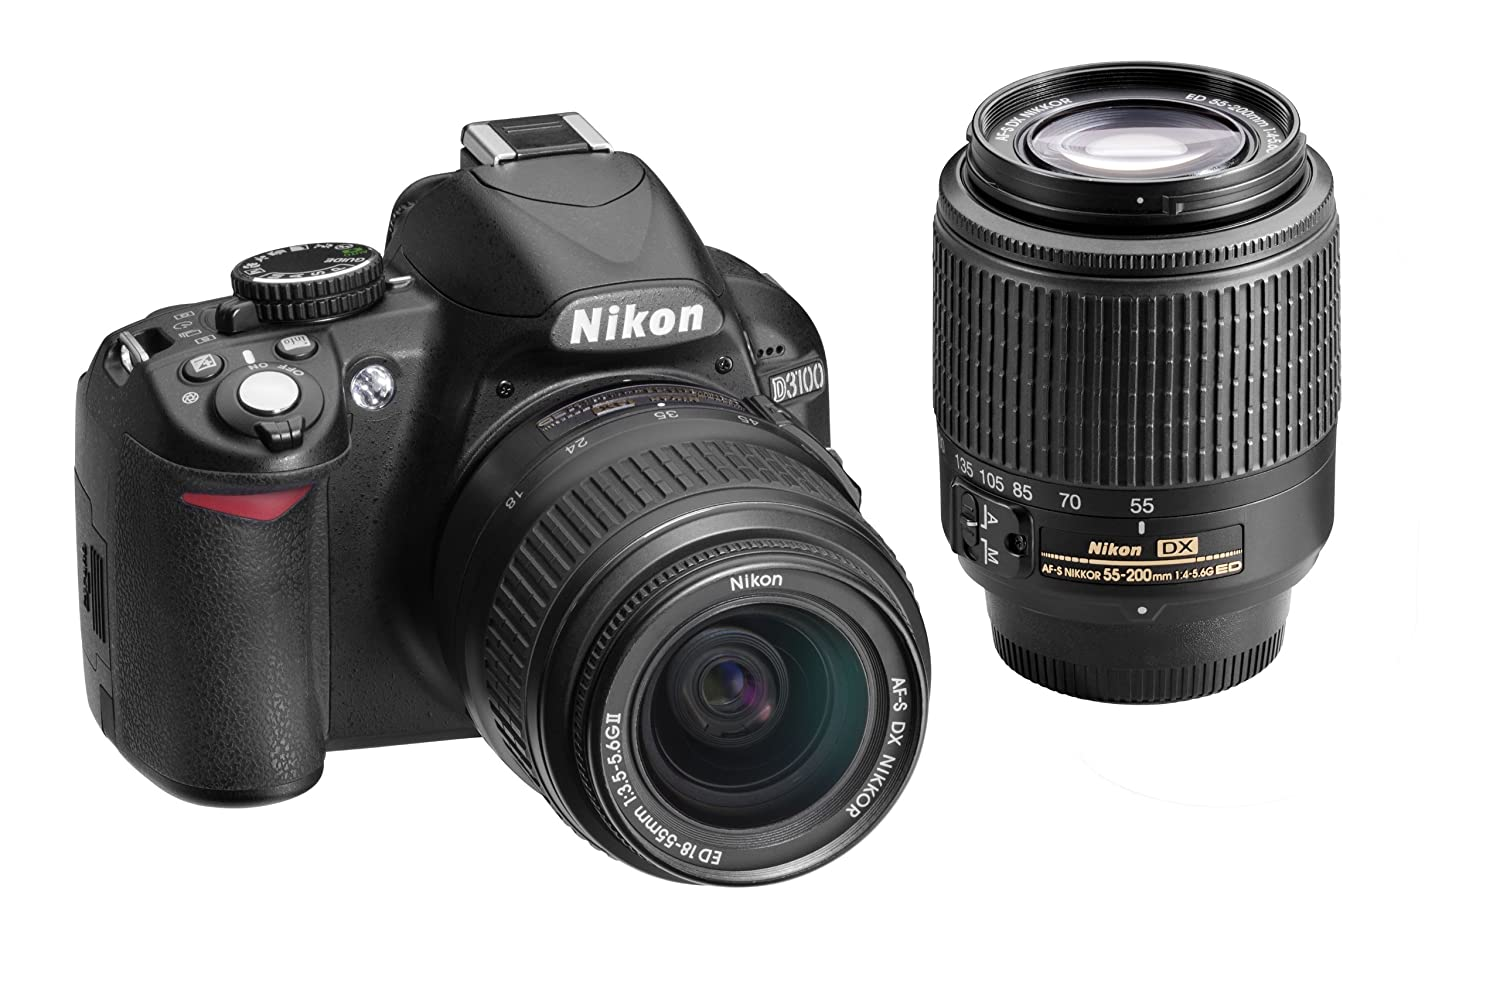 Nikon D3100 14.2MP Digital SLR Double-Zoom Lens Kit with 18-55mm and 55-200mm DX Zoom Lenses